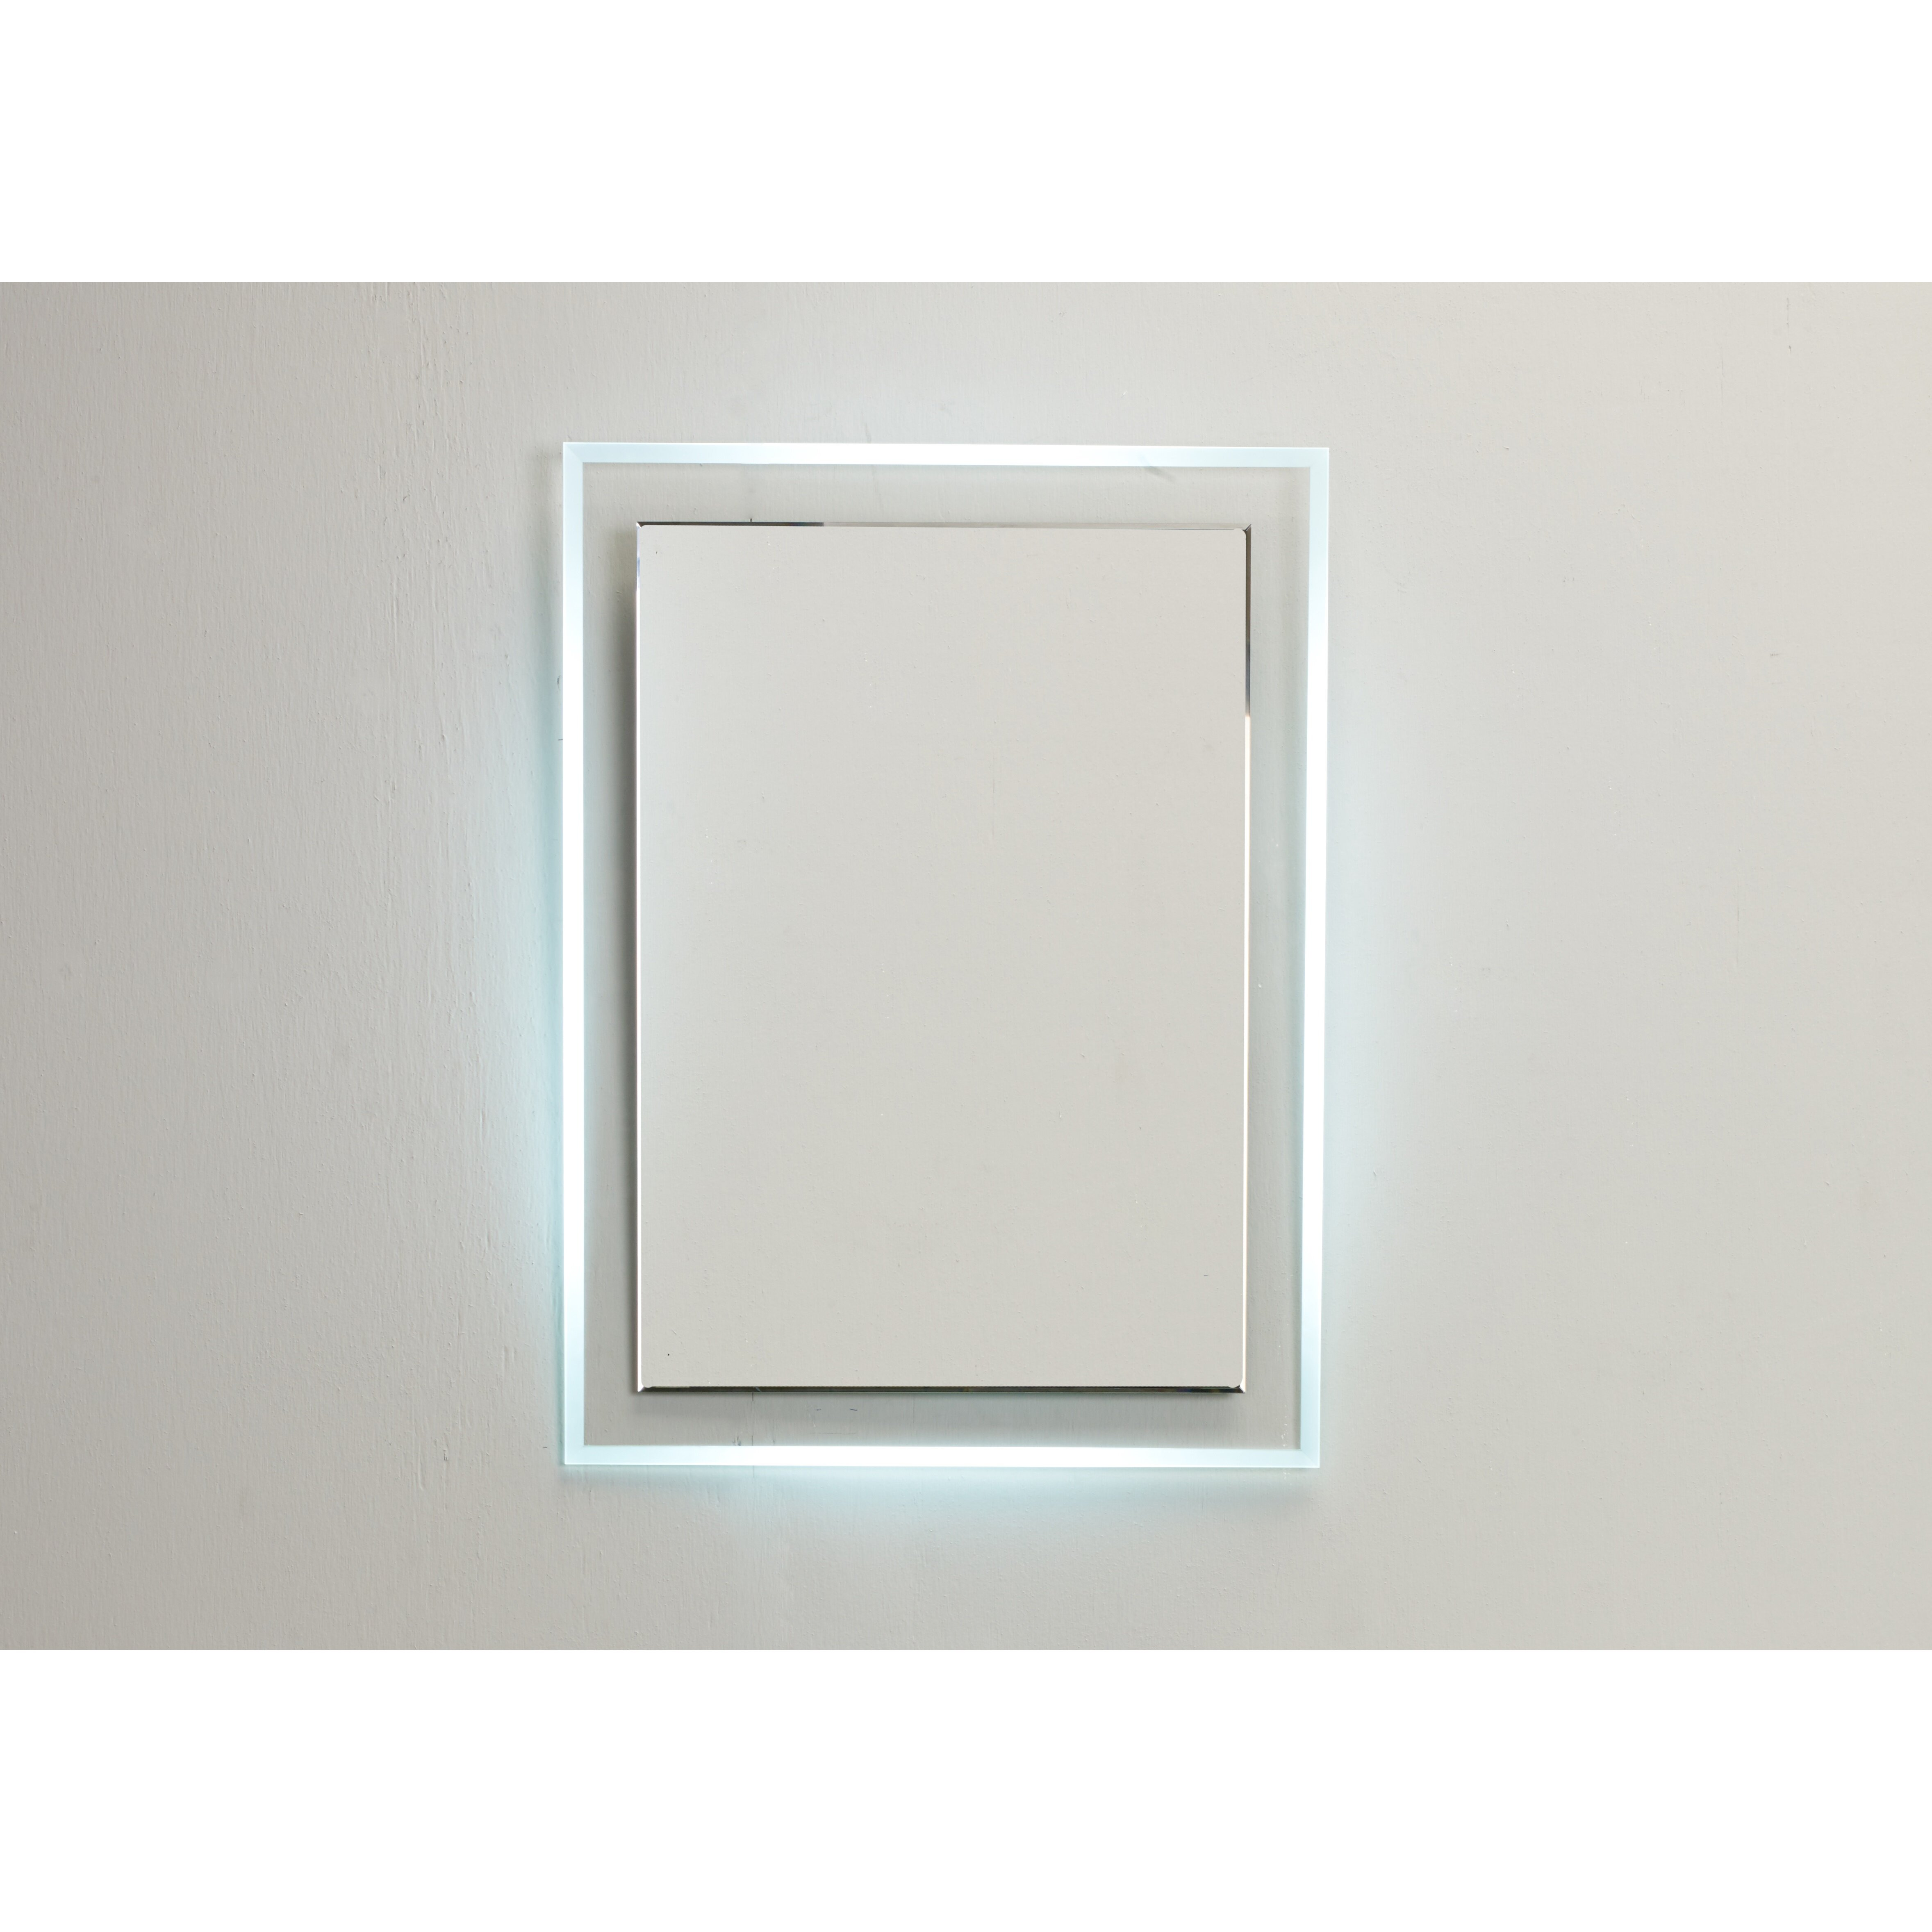 Eviva Stockholm Lighted Bathroom Vanity Wall Mirror Wayfair